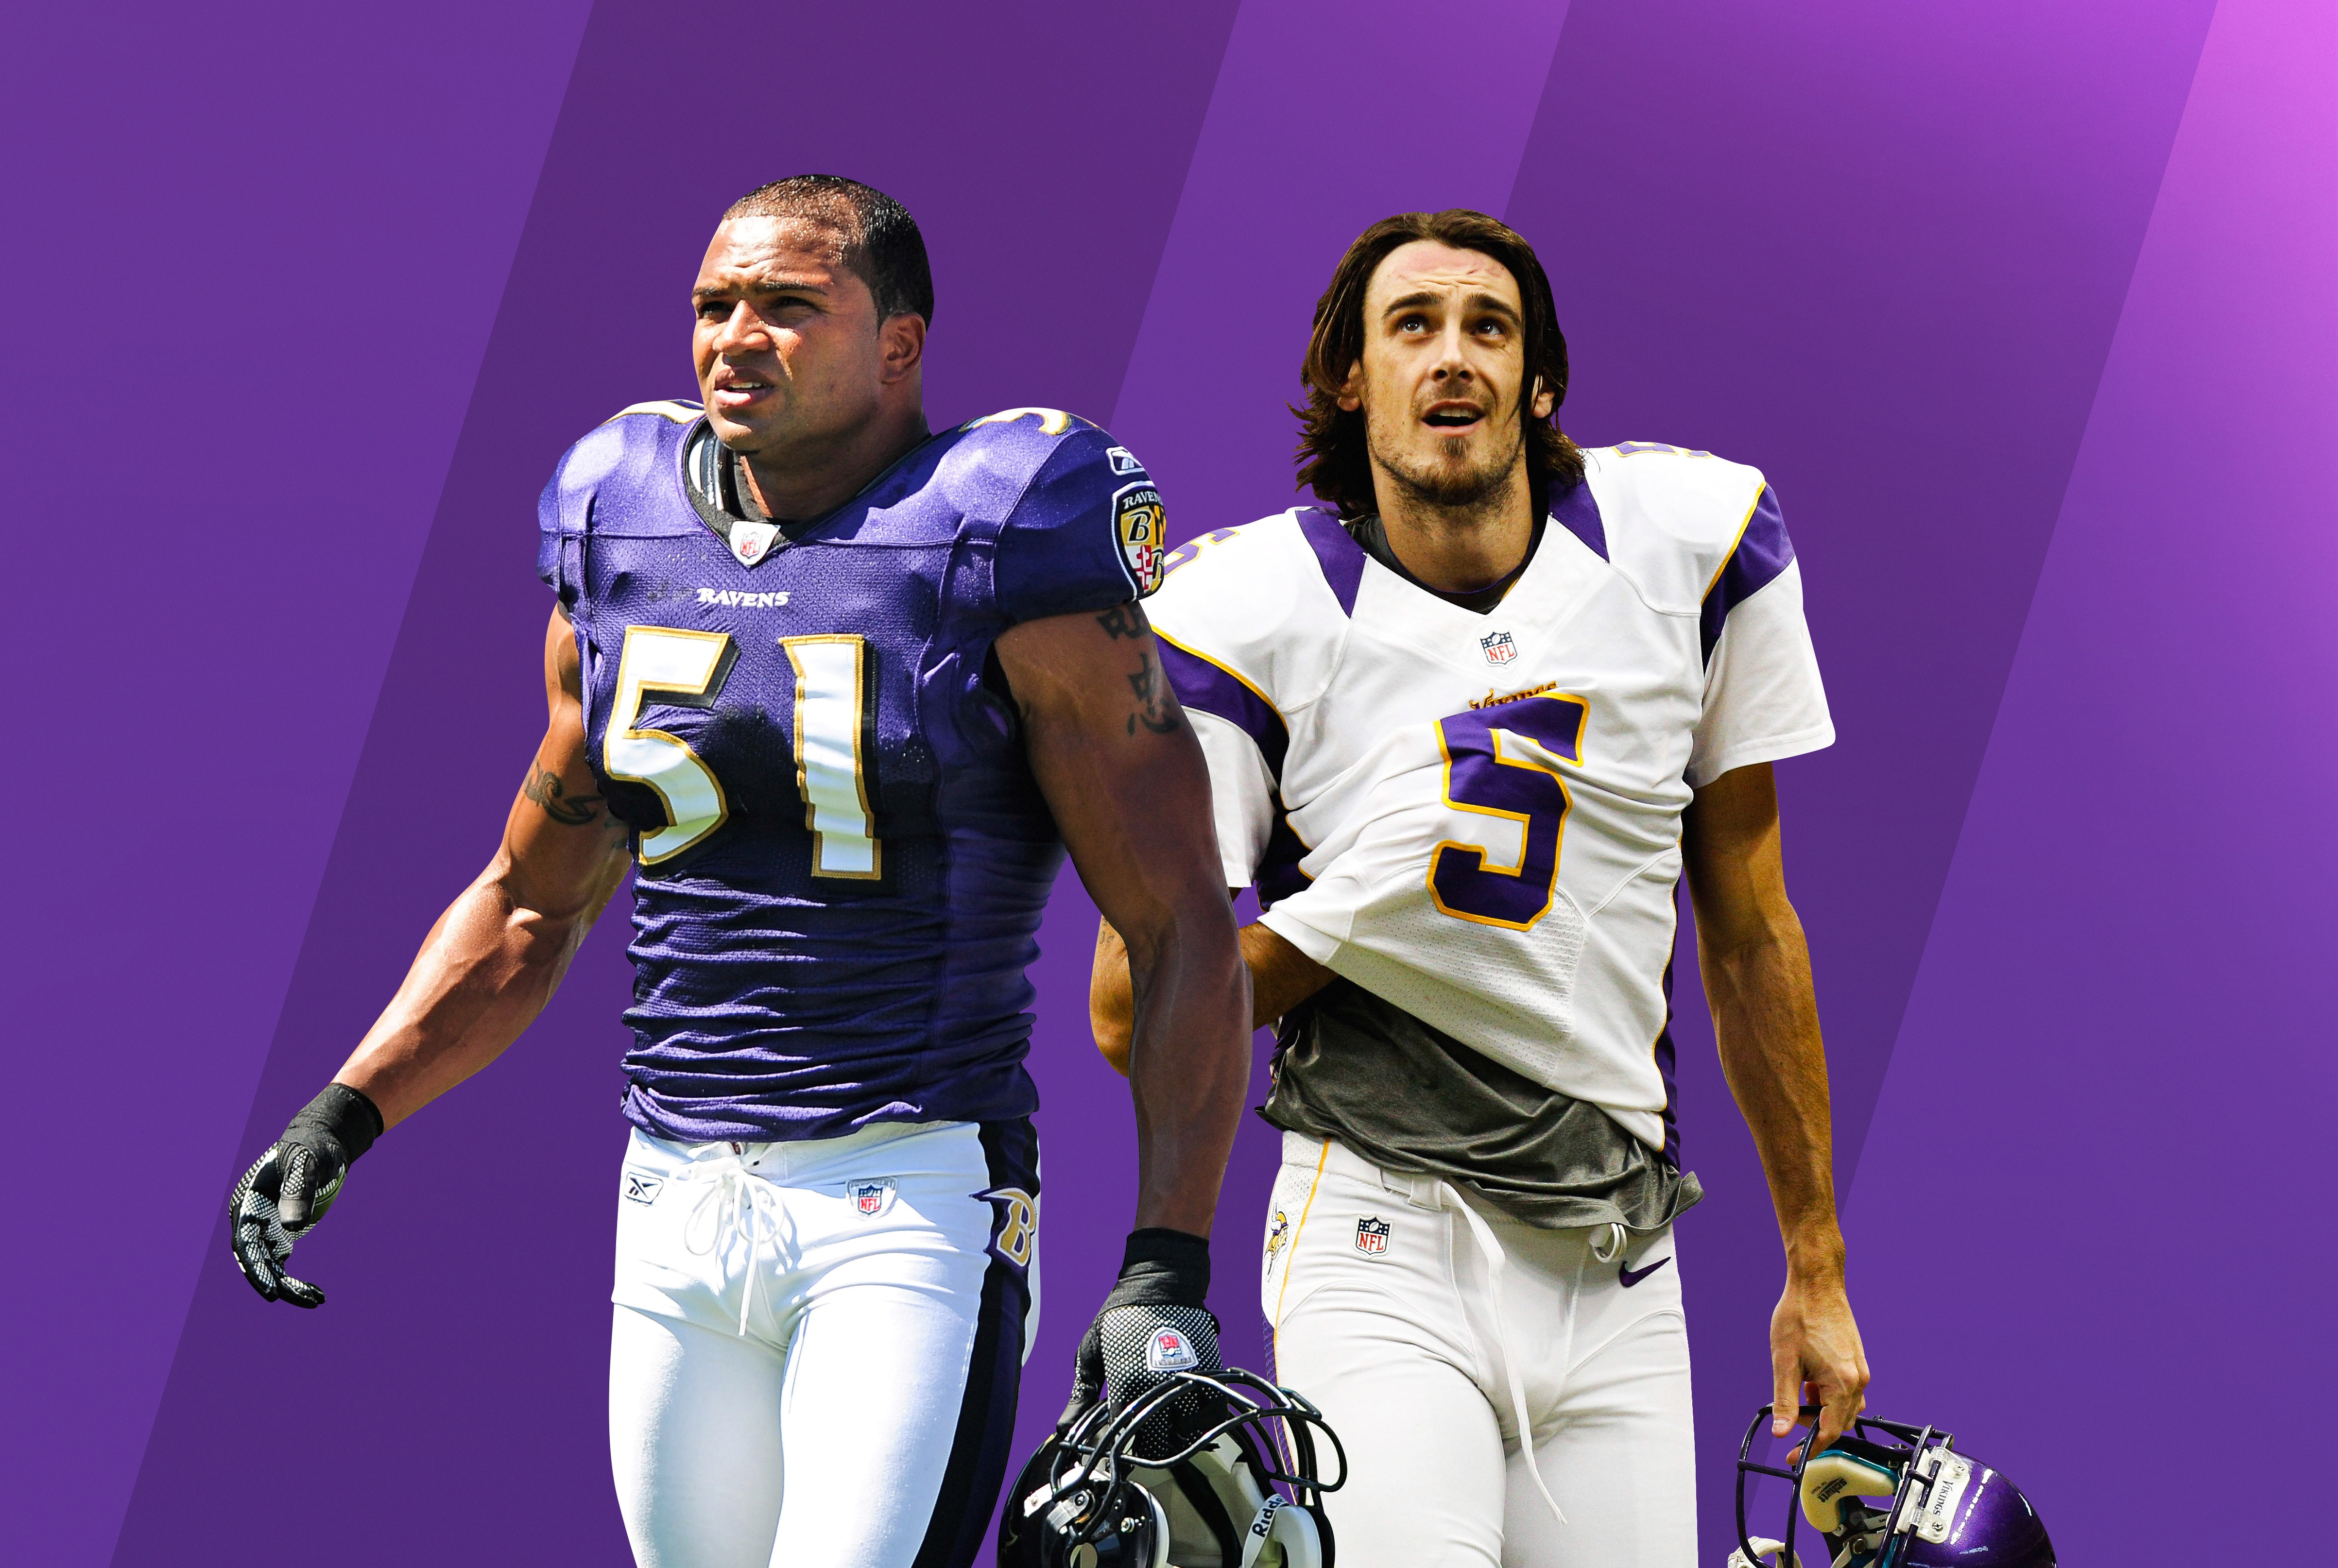 Ex-NFLers Brendon Ayanbadejo & Chris Kluwe: Champions of Equality for the LGBTQ+ Community